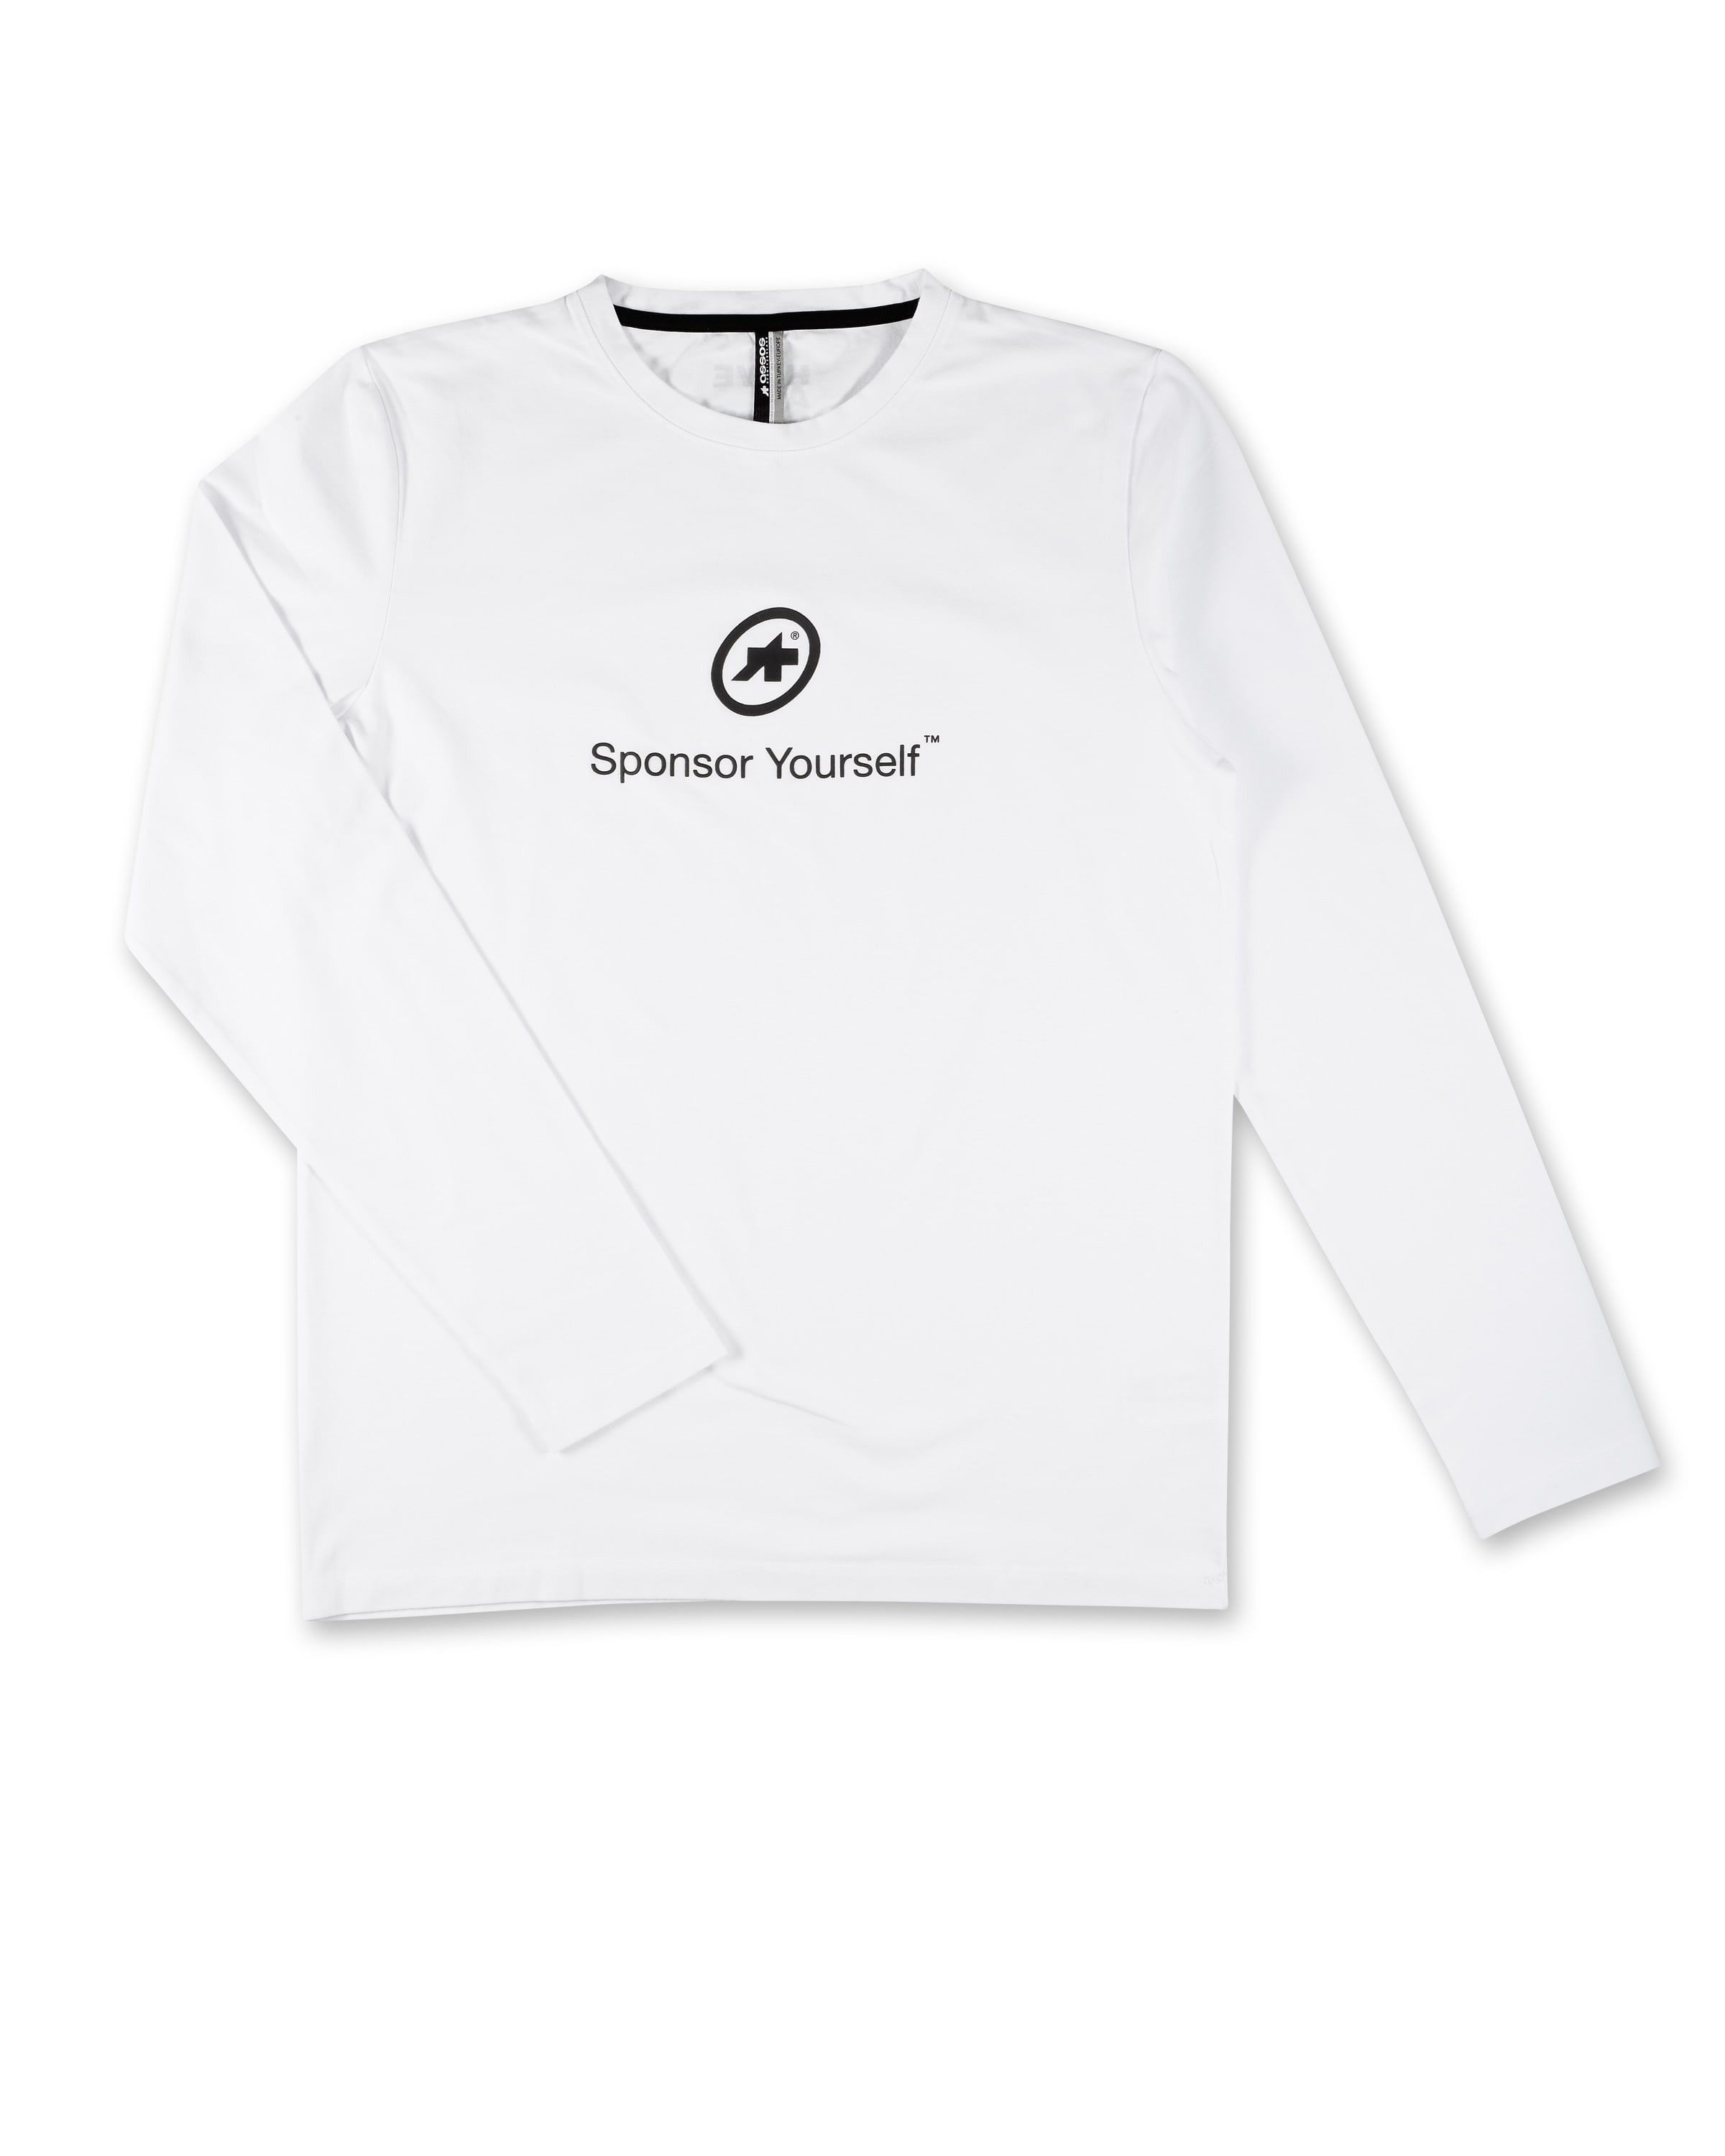 Assos T Shirt Sponsor Yourself Ls Holywhite X Large Svelte